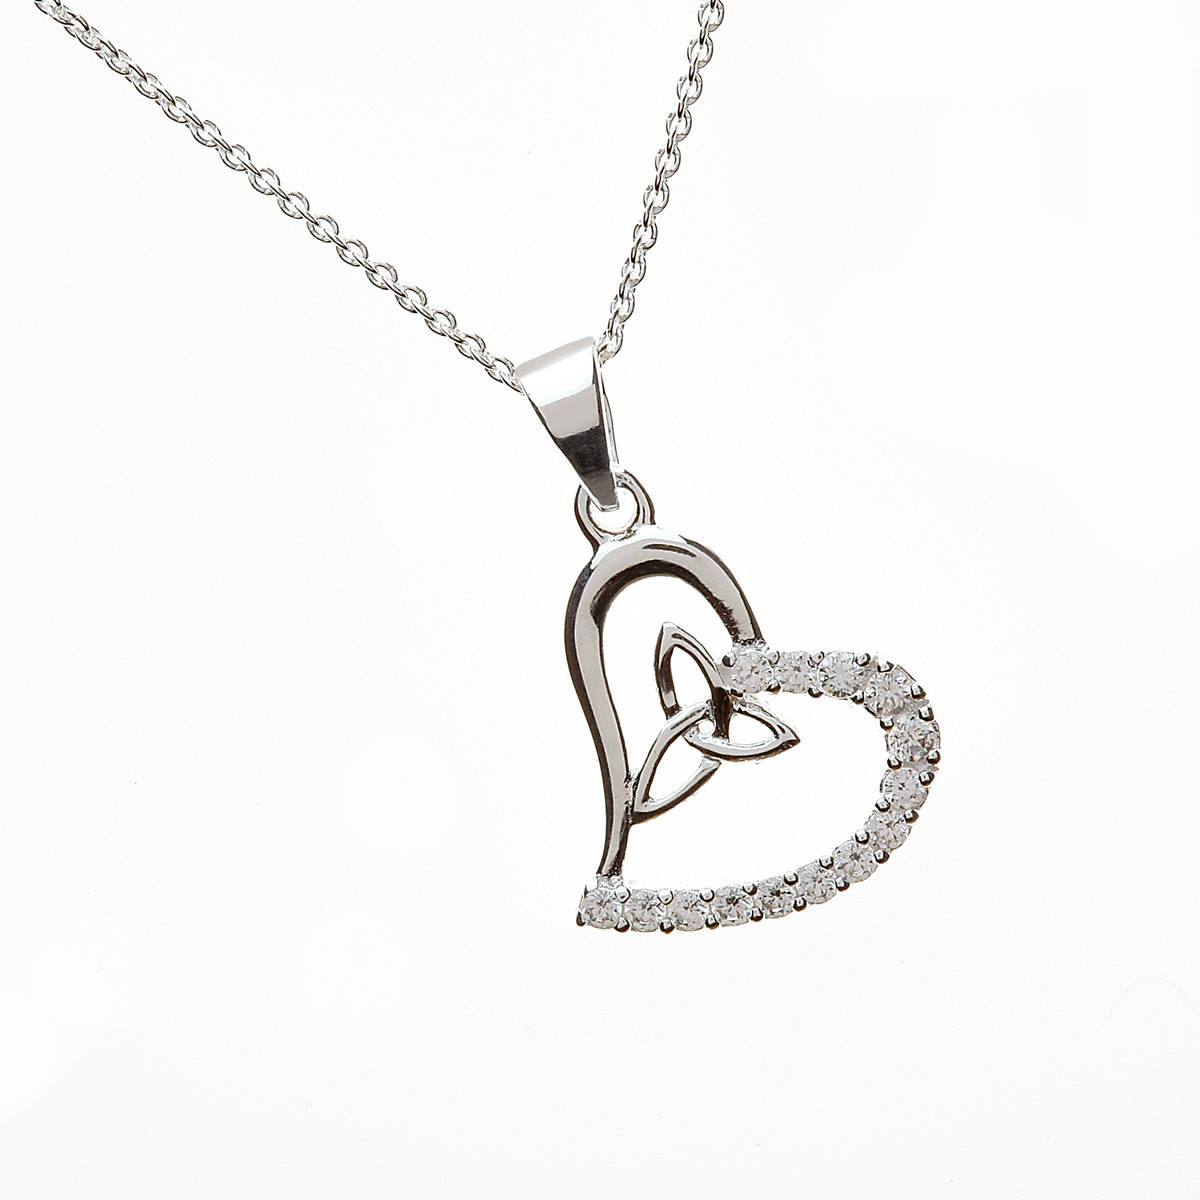 Silver Cz Heart Pendant With Trinity Knot Inset